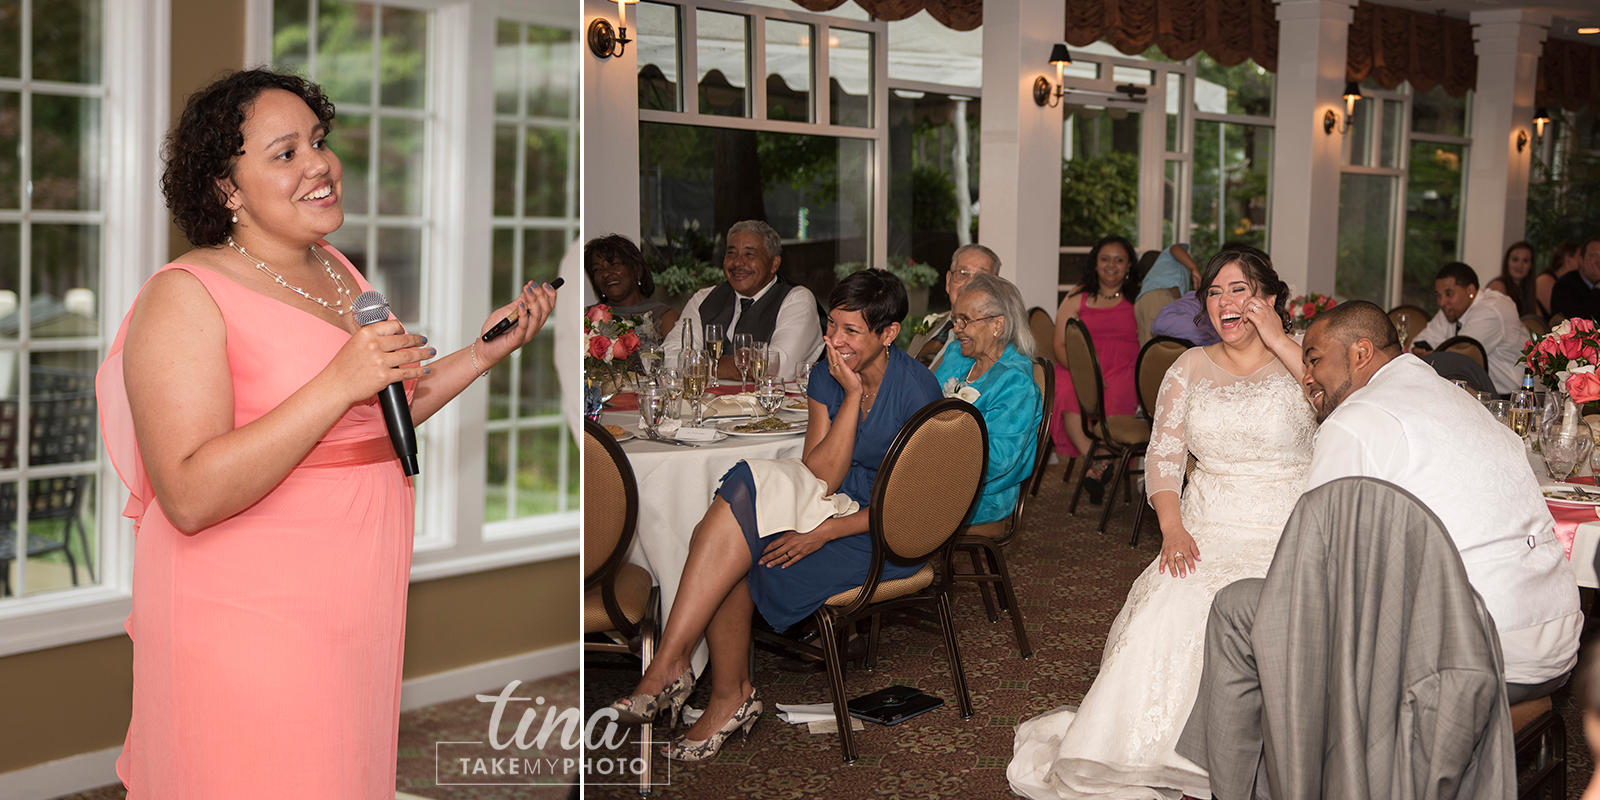 wedding-photographer-reception-maid-of-honor-speech-laugh-summer-brandermill-country-club-virginia